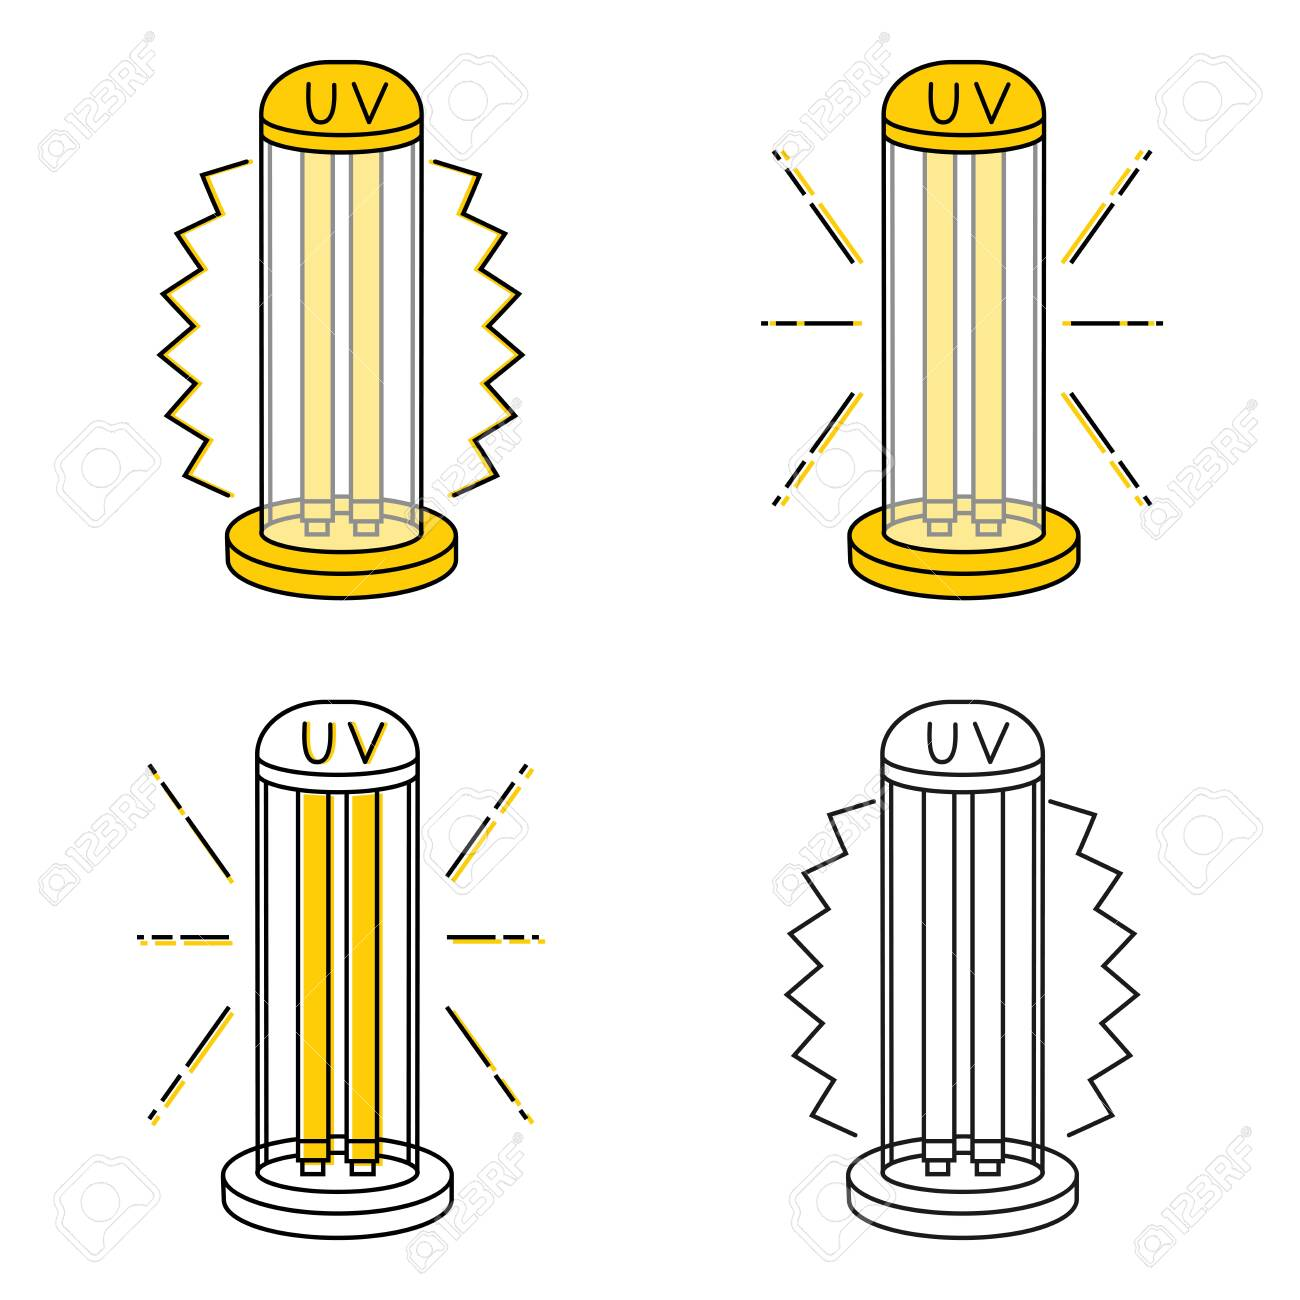 UV light disinfection lamps. Ultraviolet light sterilization of air and all surfaces. Device for disinfection of premises. Surface cleaning. Vector illustration - 157335301